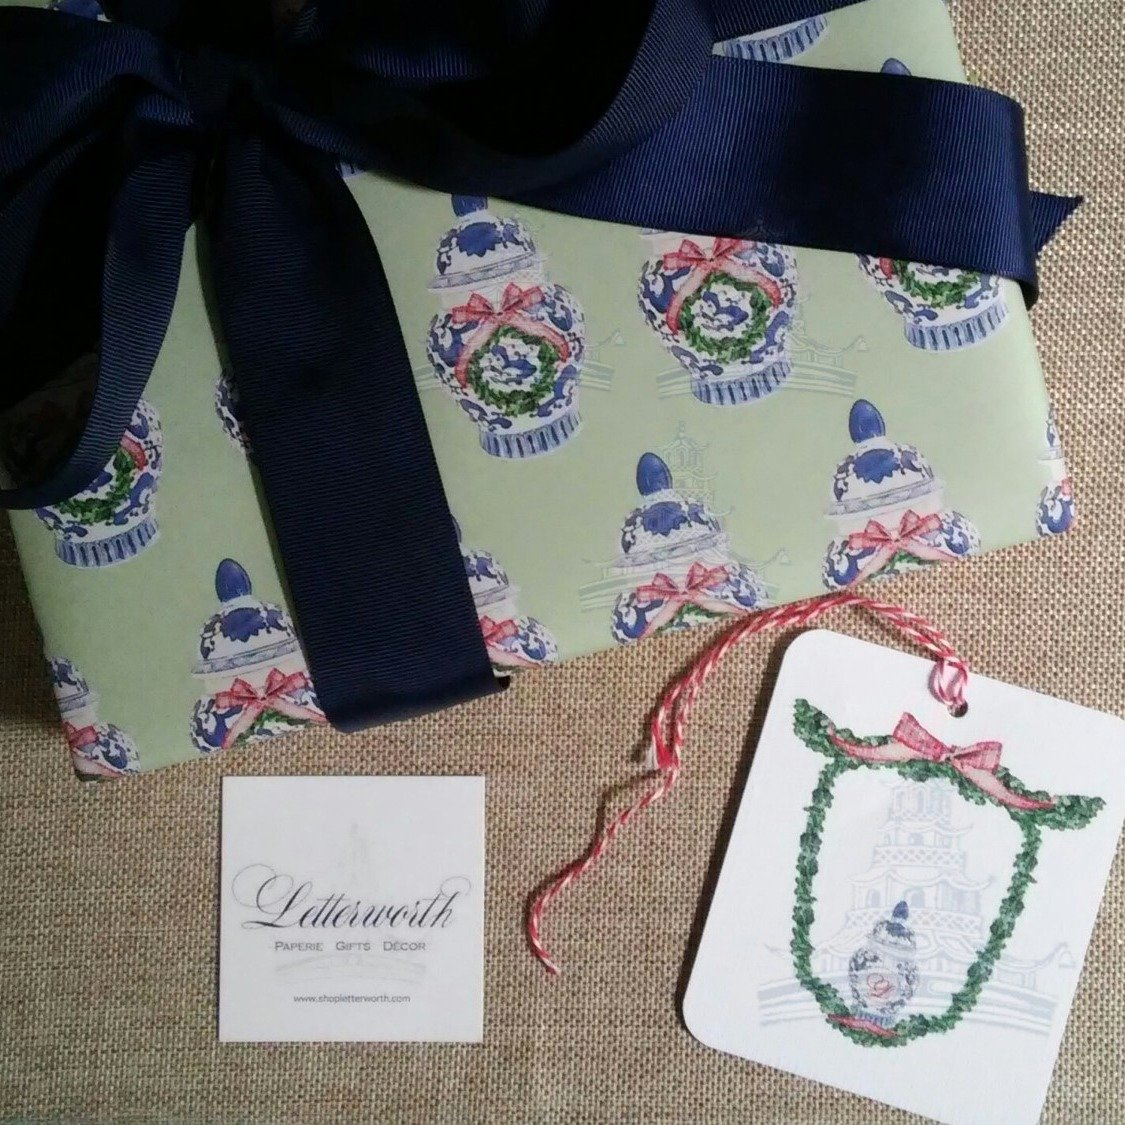 Chinoiserie Ginger Jar Green Holiday Gift Wrapping Paper by Letterworth